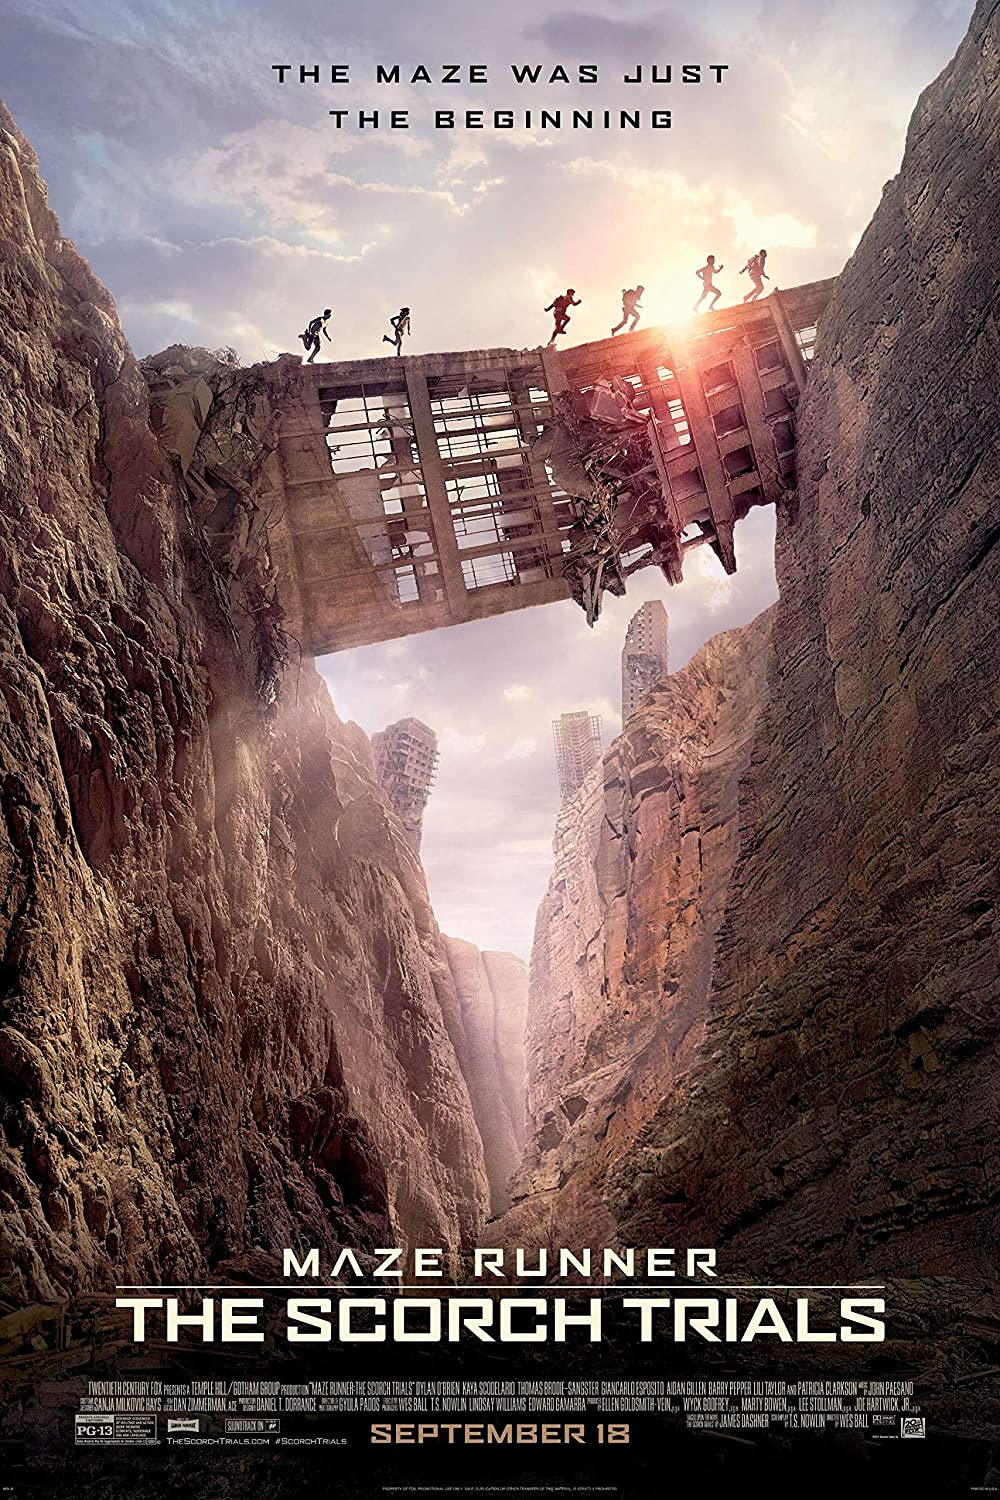 Black Creations Maze Runner  The Scorch Trials 3 Movie Poster Canvas Picture Art Print Premium Quality A0 A1 A2 A3 A4 (A0 Canvas (30 40))